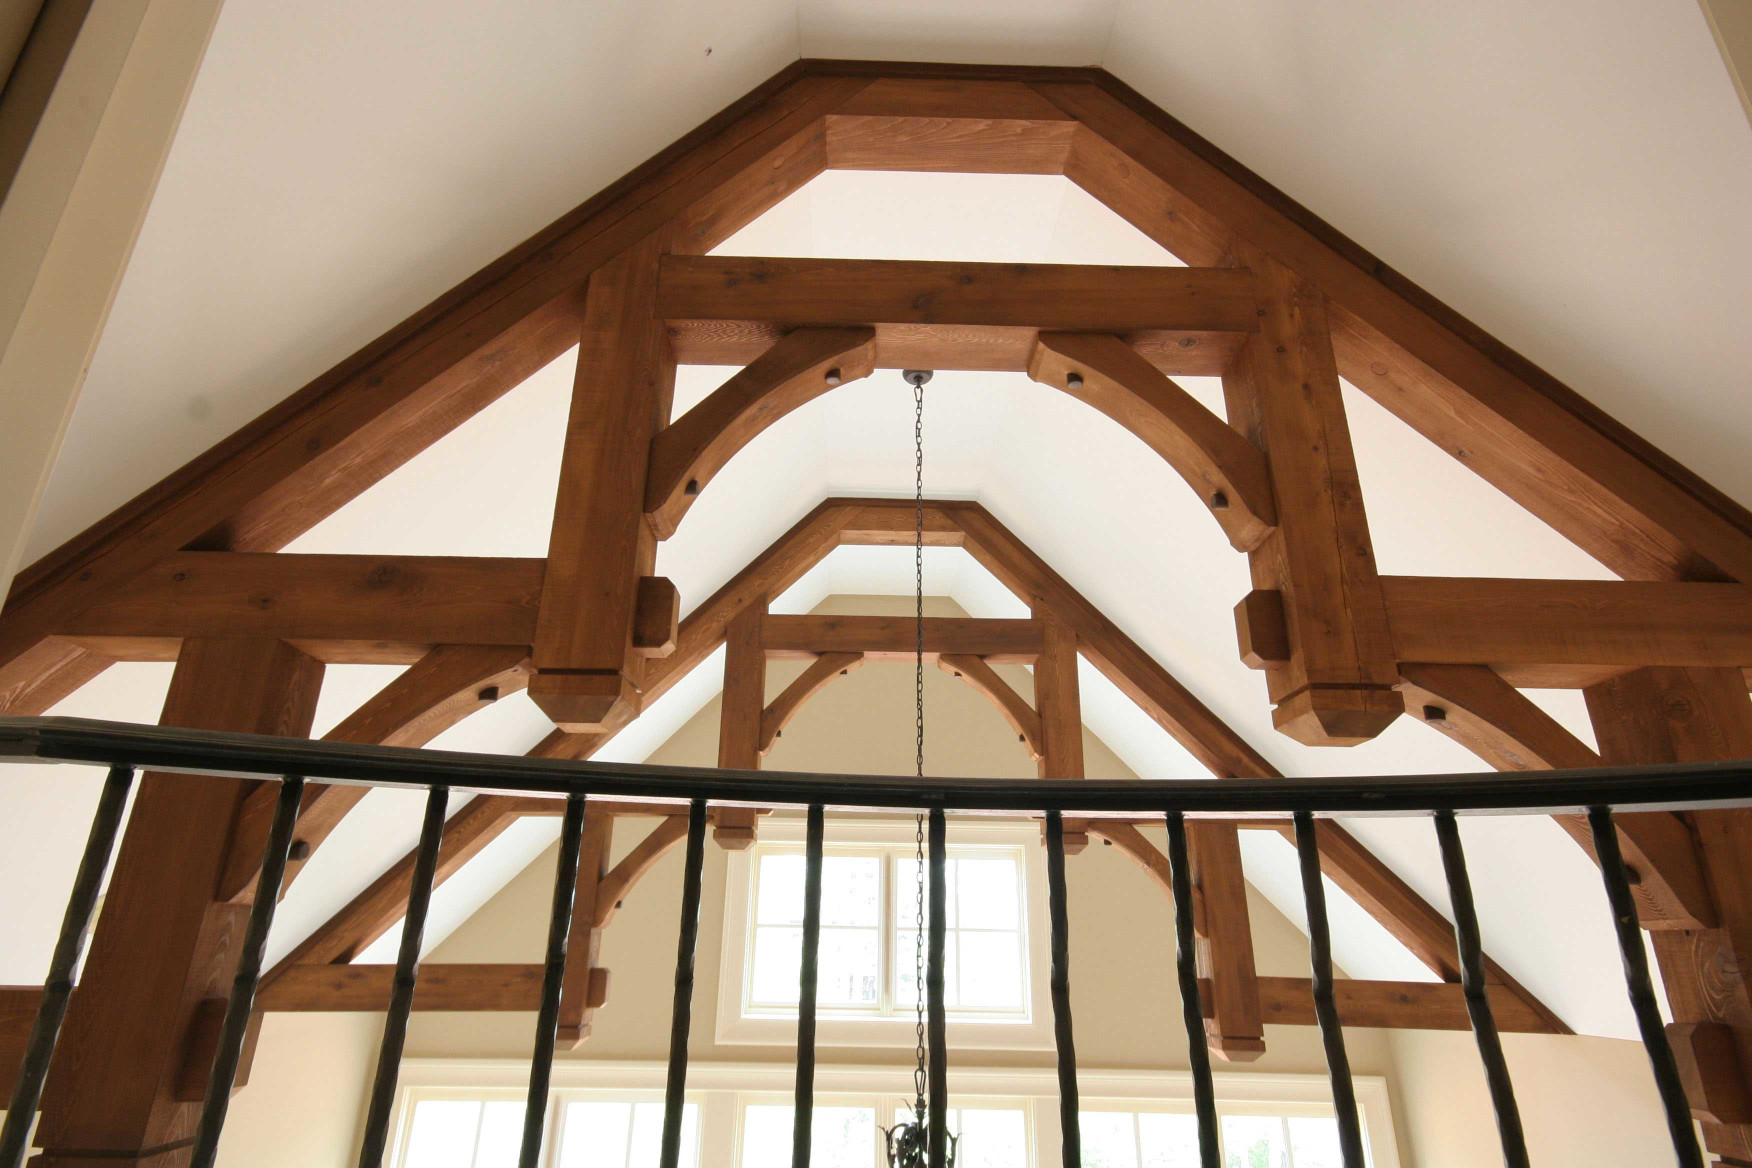 The wood braces and wood beams used creating these wood trusses are elegant features in the interior of this home